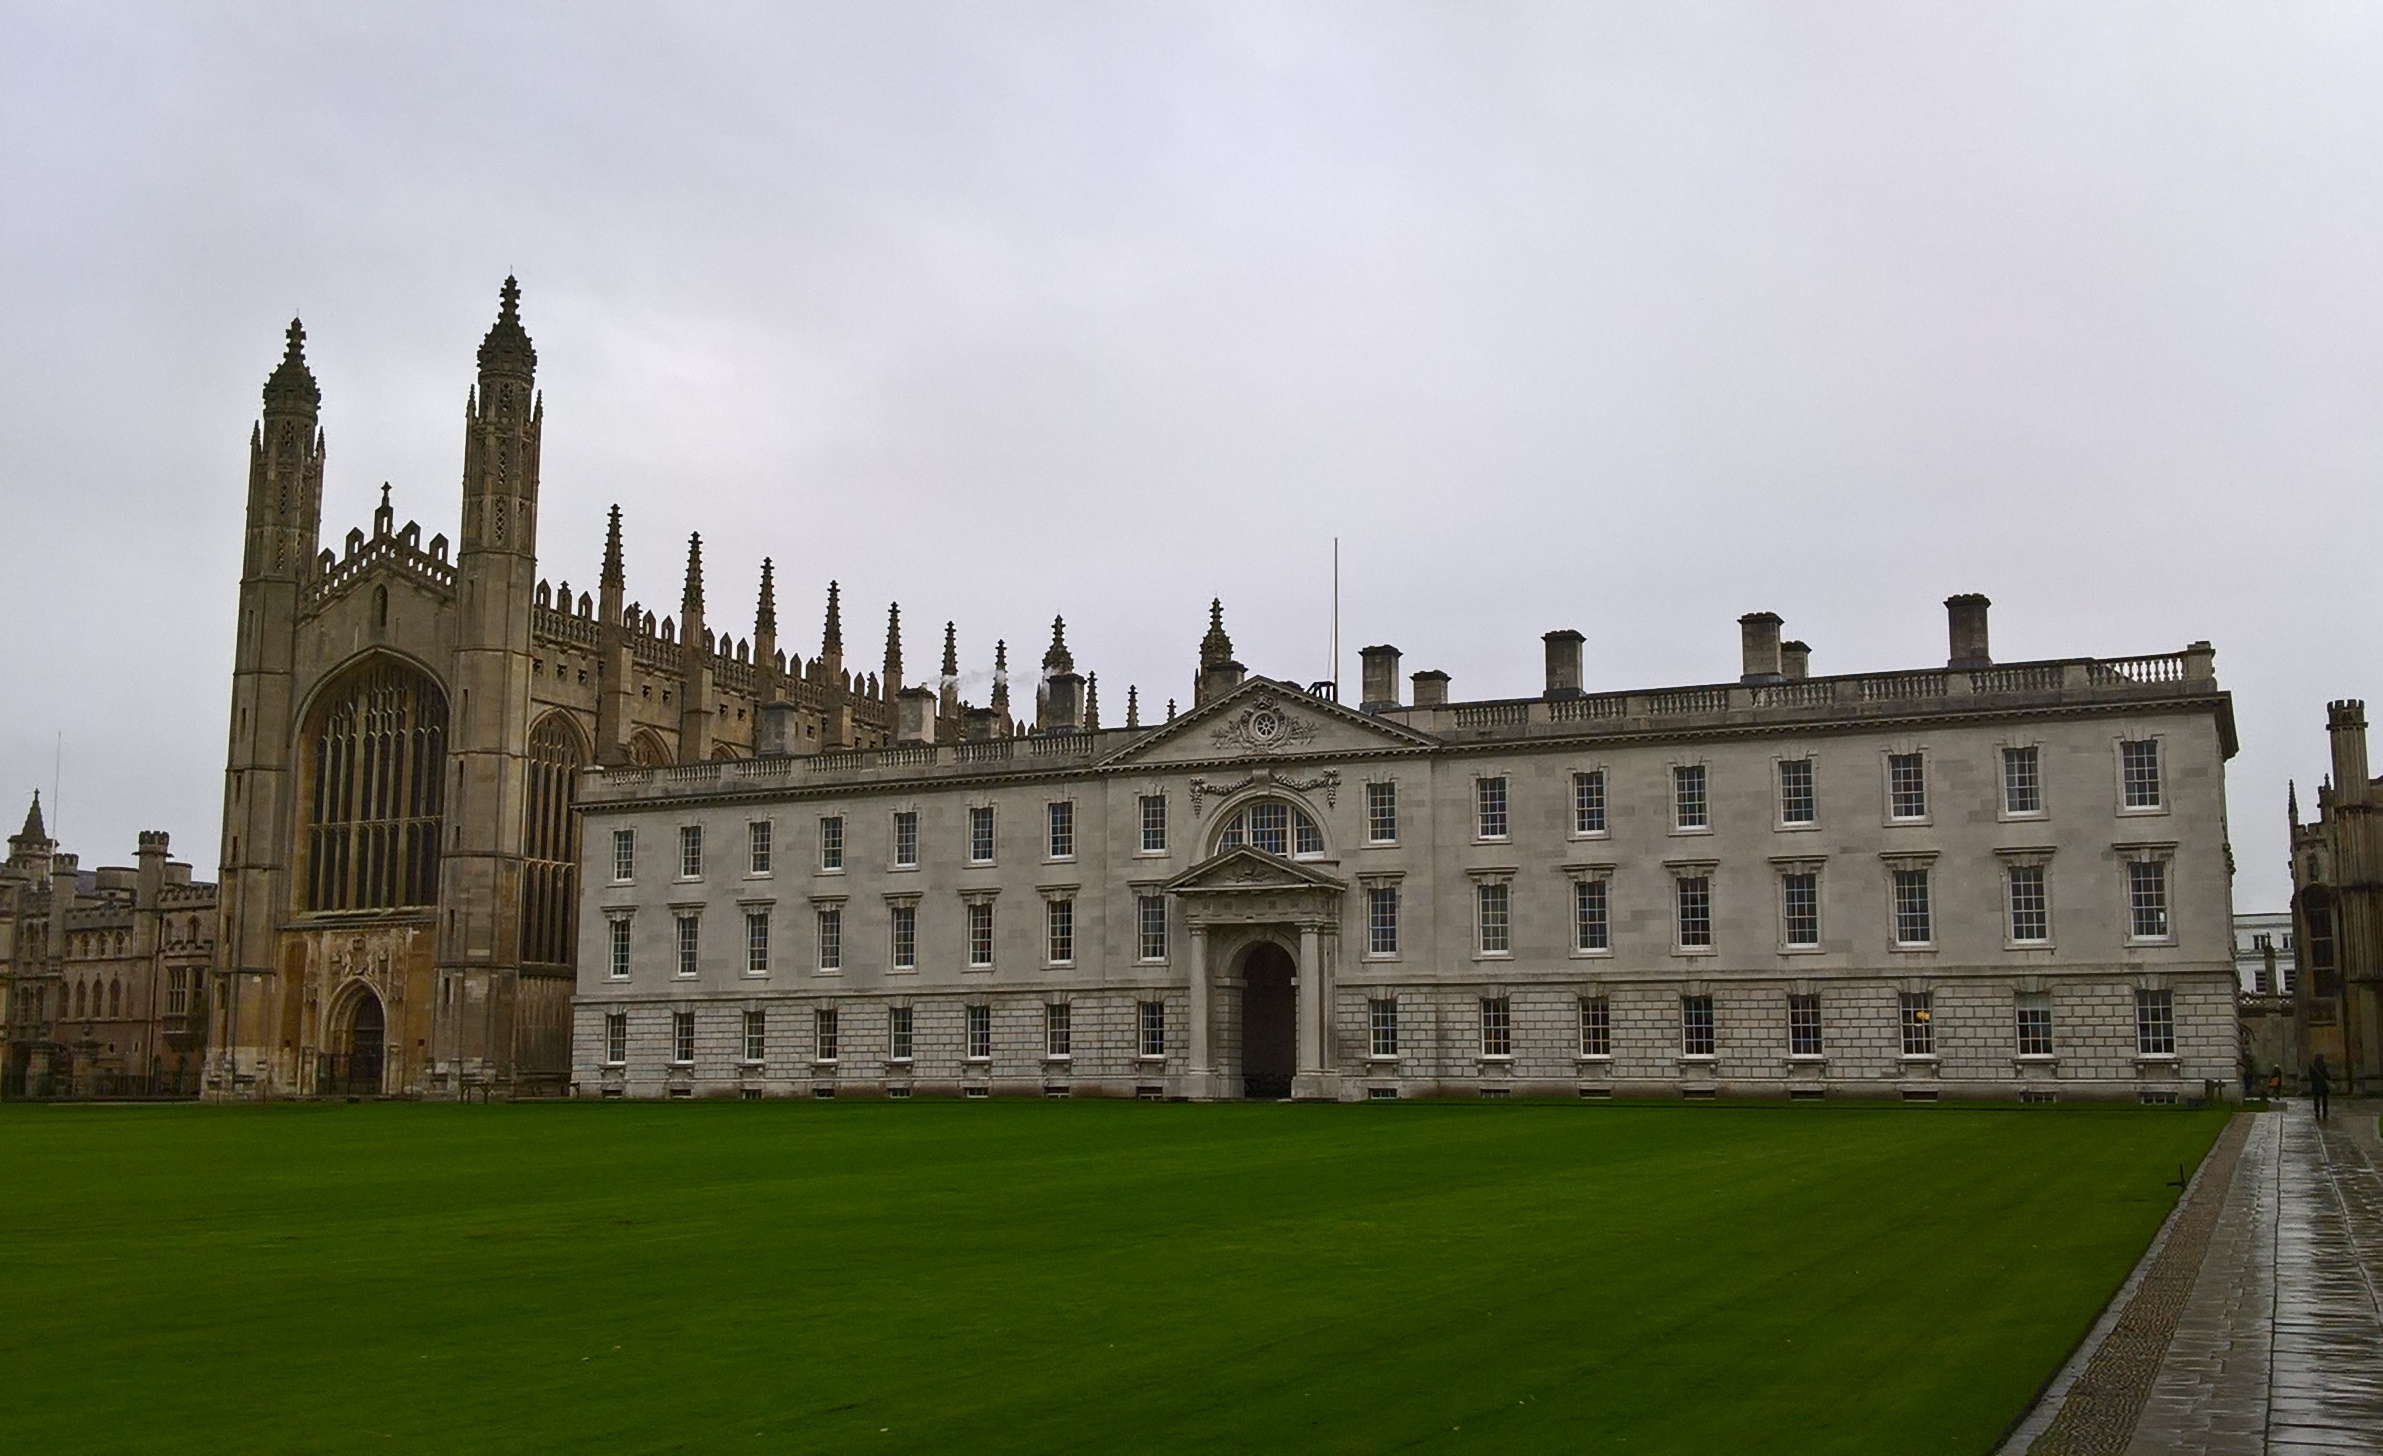 King's College w Cambridge